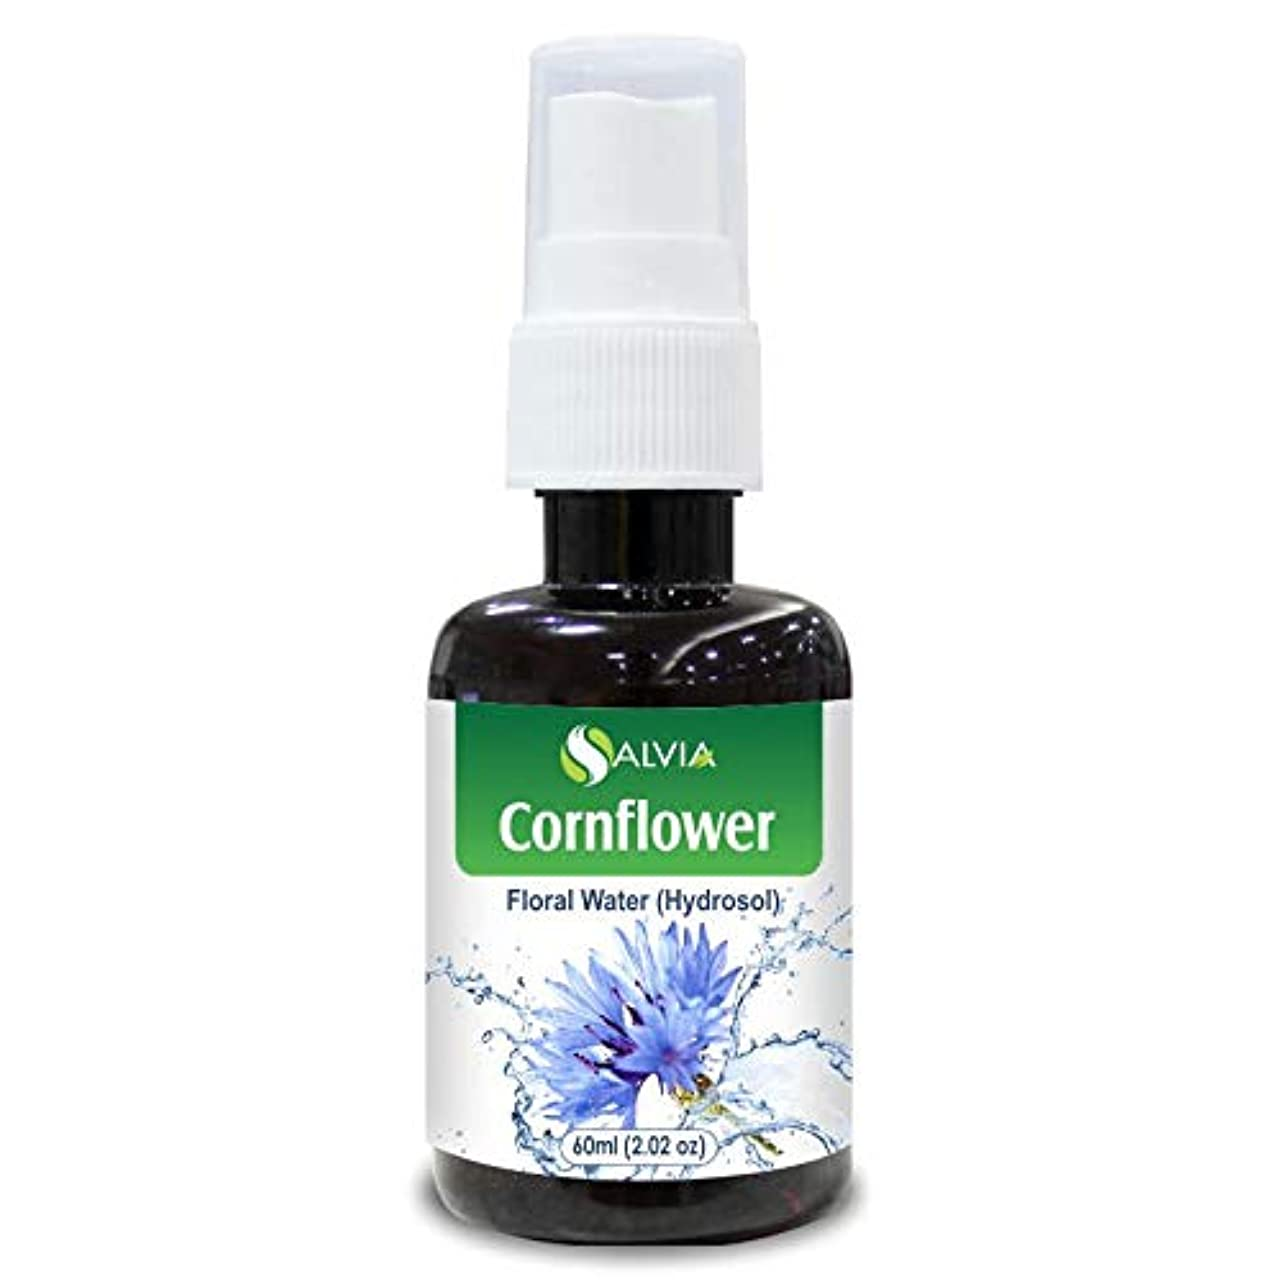 Cornflower Floral Water 60ml (Hydrosol) 100% Pure And Natural